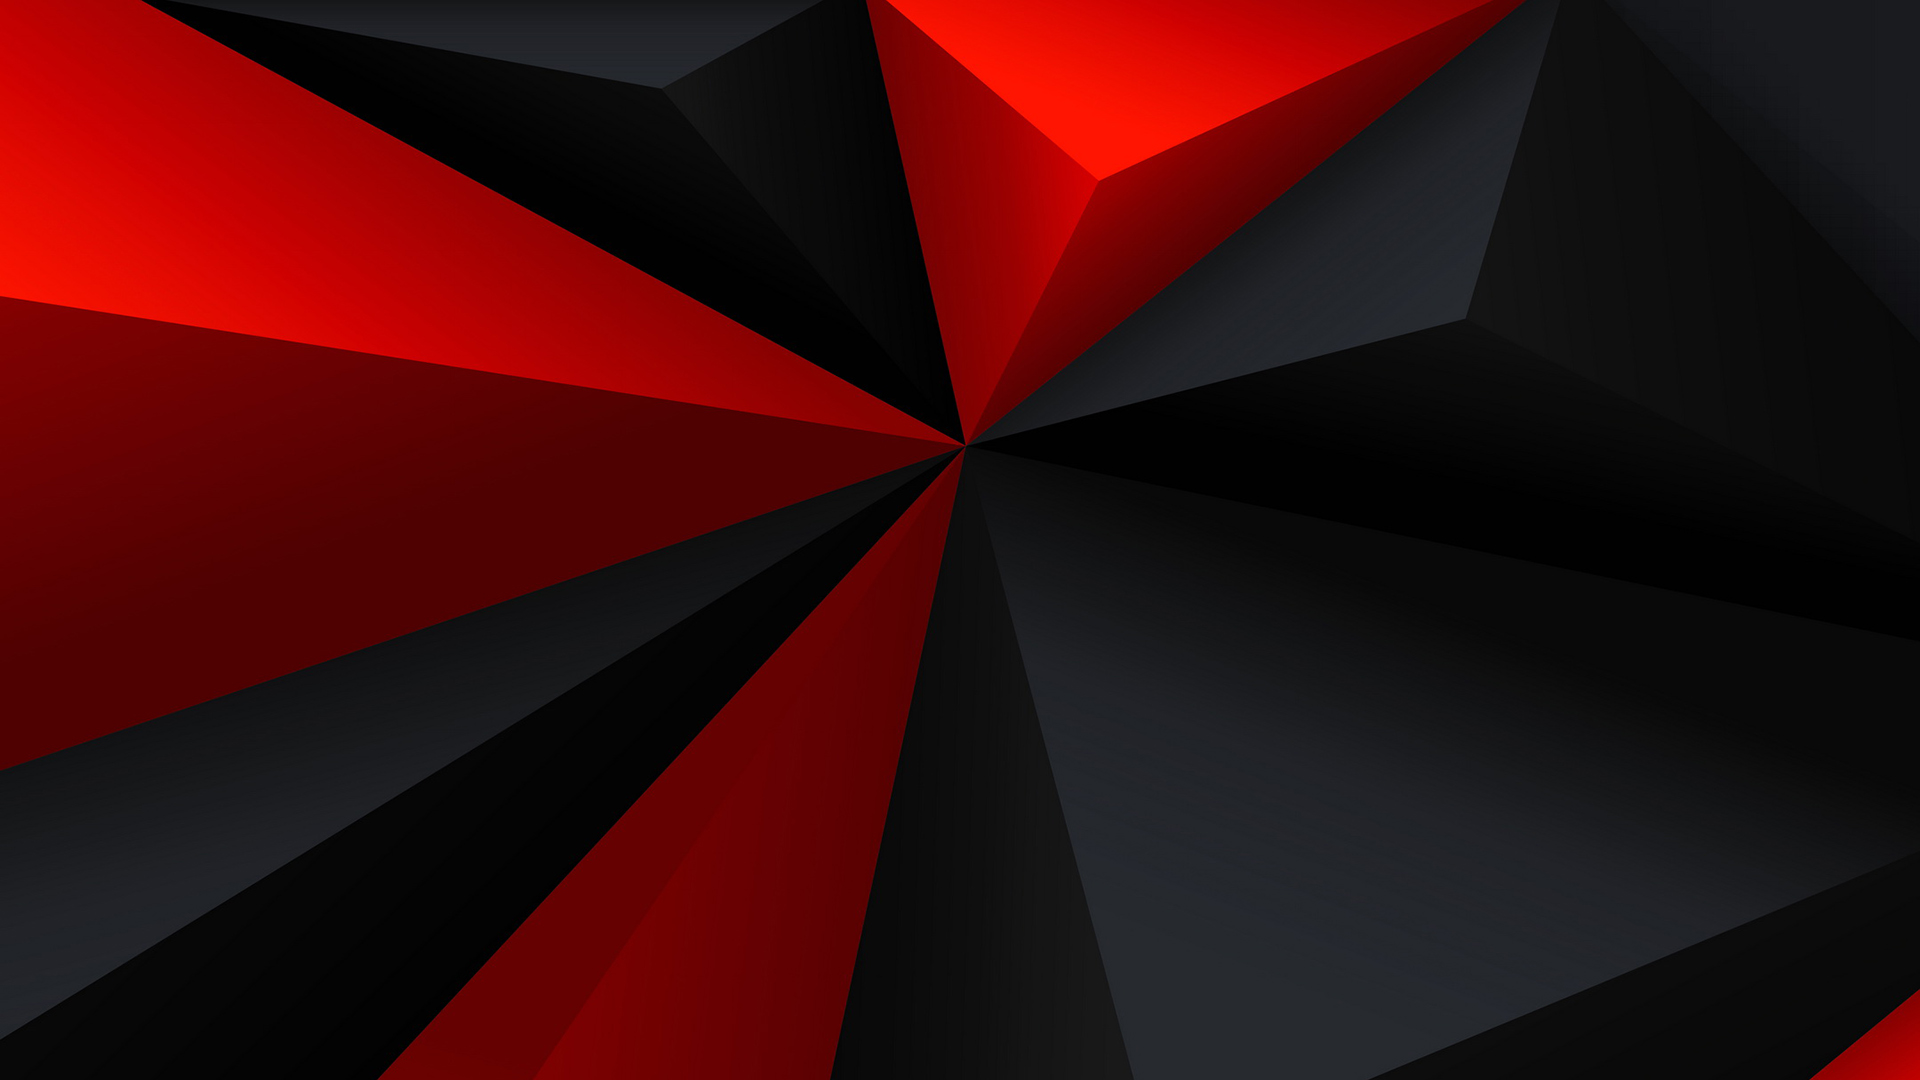 4k red wallpapers high quality | download free